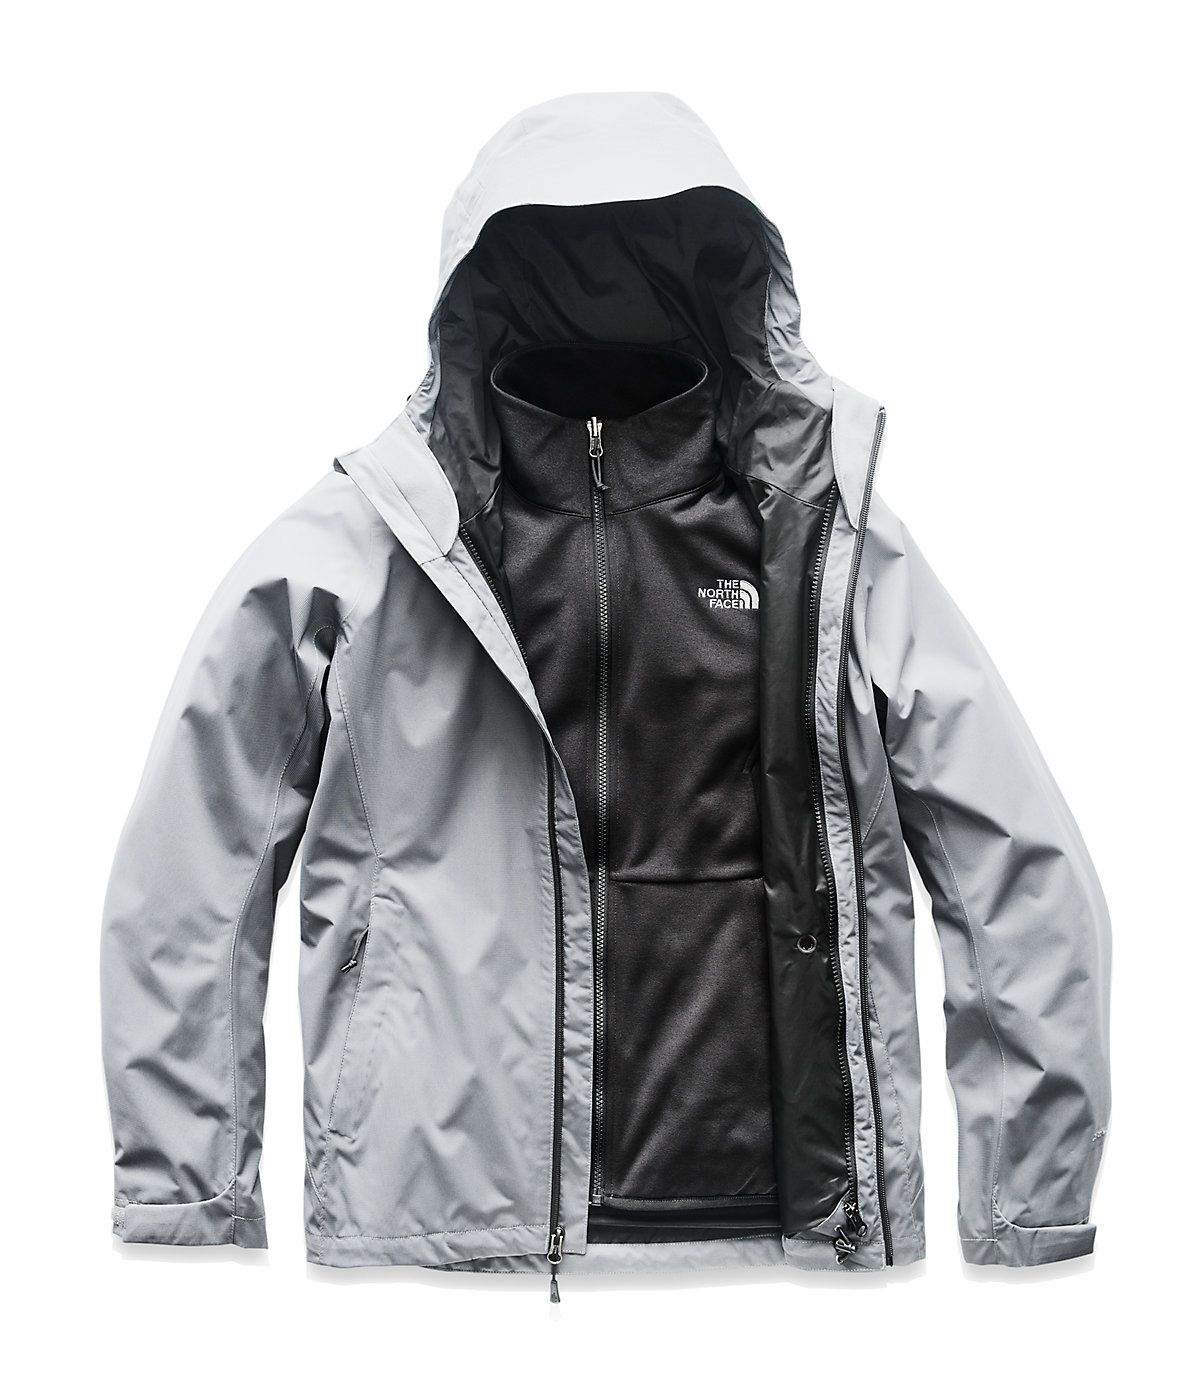 e52772008 Women's Arrowood Triclimate® Jacket | Waterproof 3-in-1 | The North ...